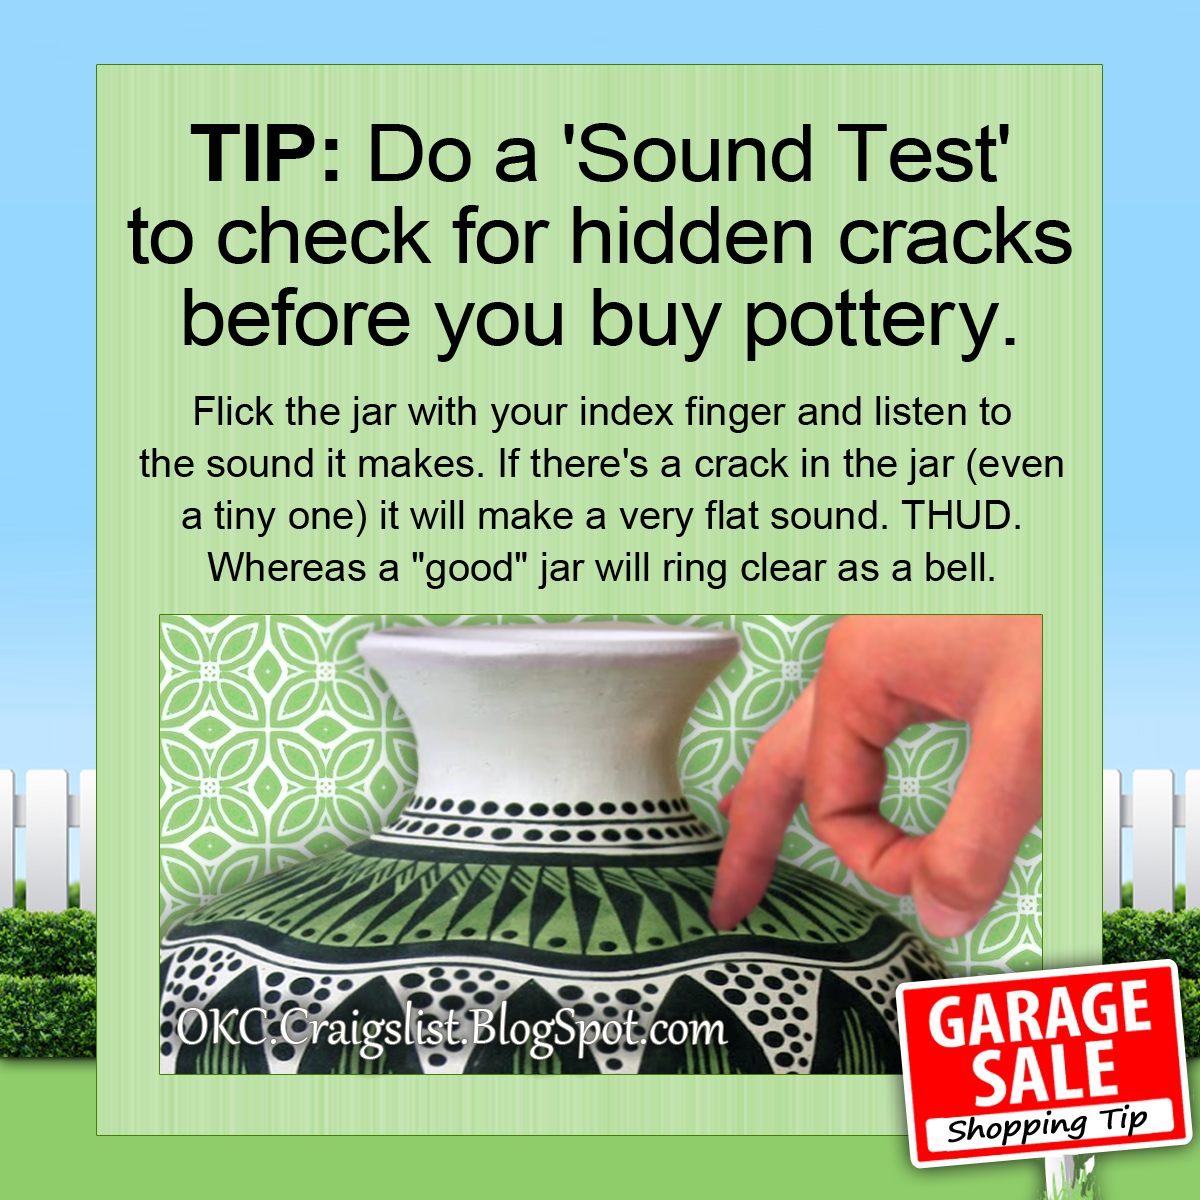 GARAGE SALE TIP: How to find hidden cracks in pottery before you buy it